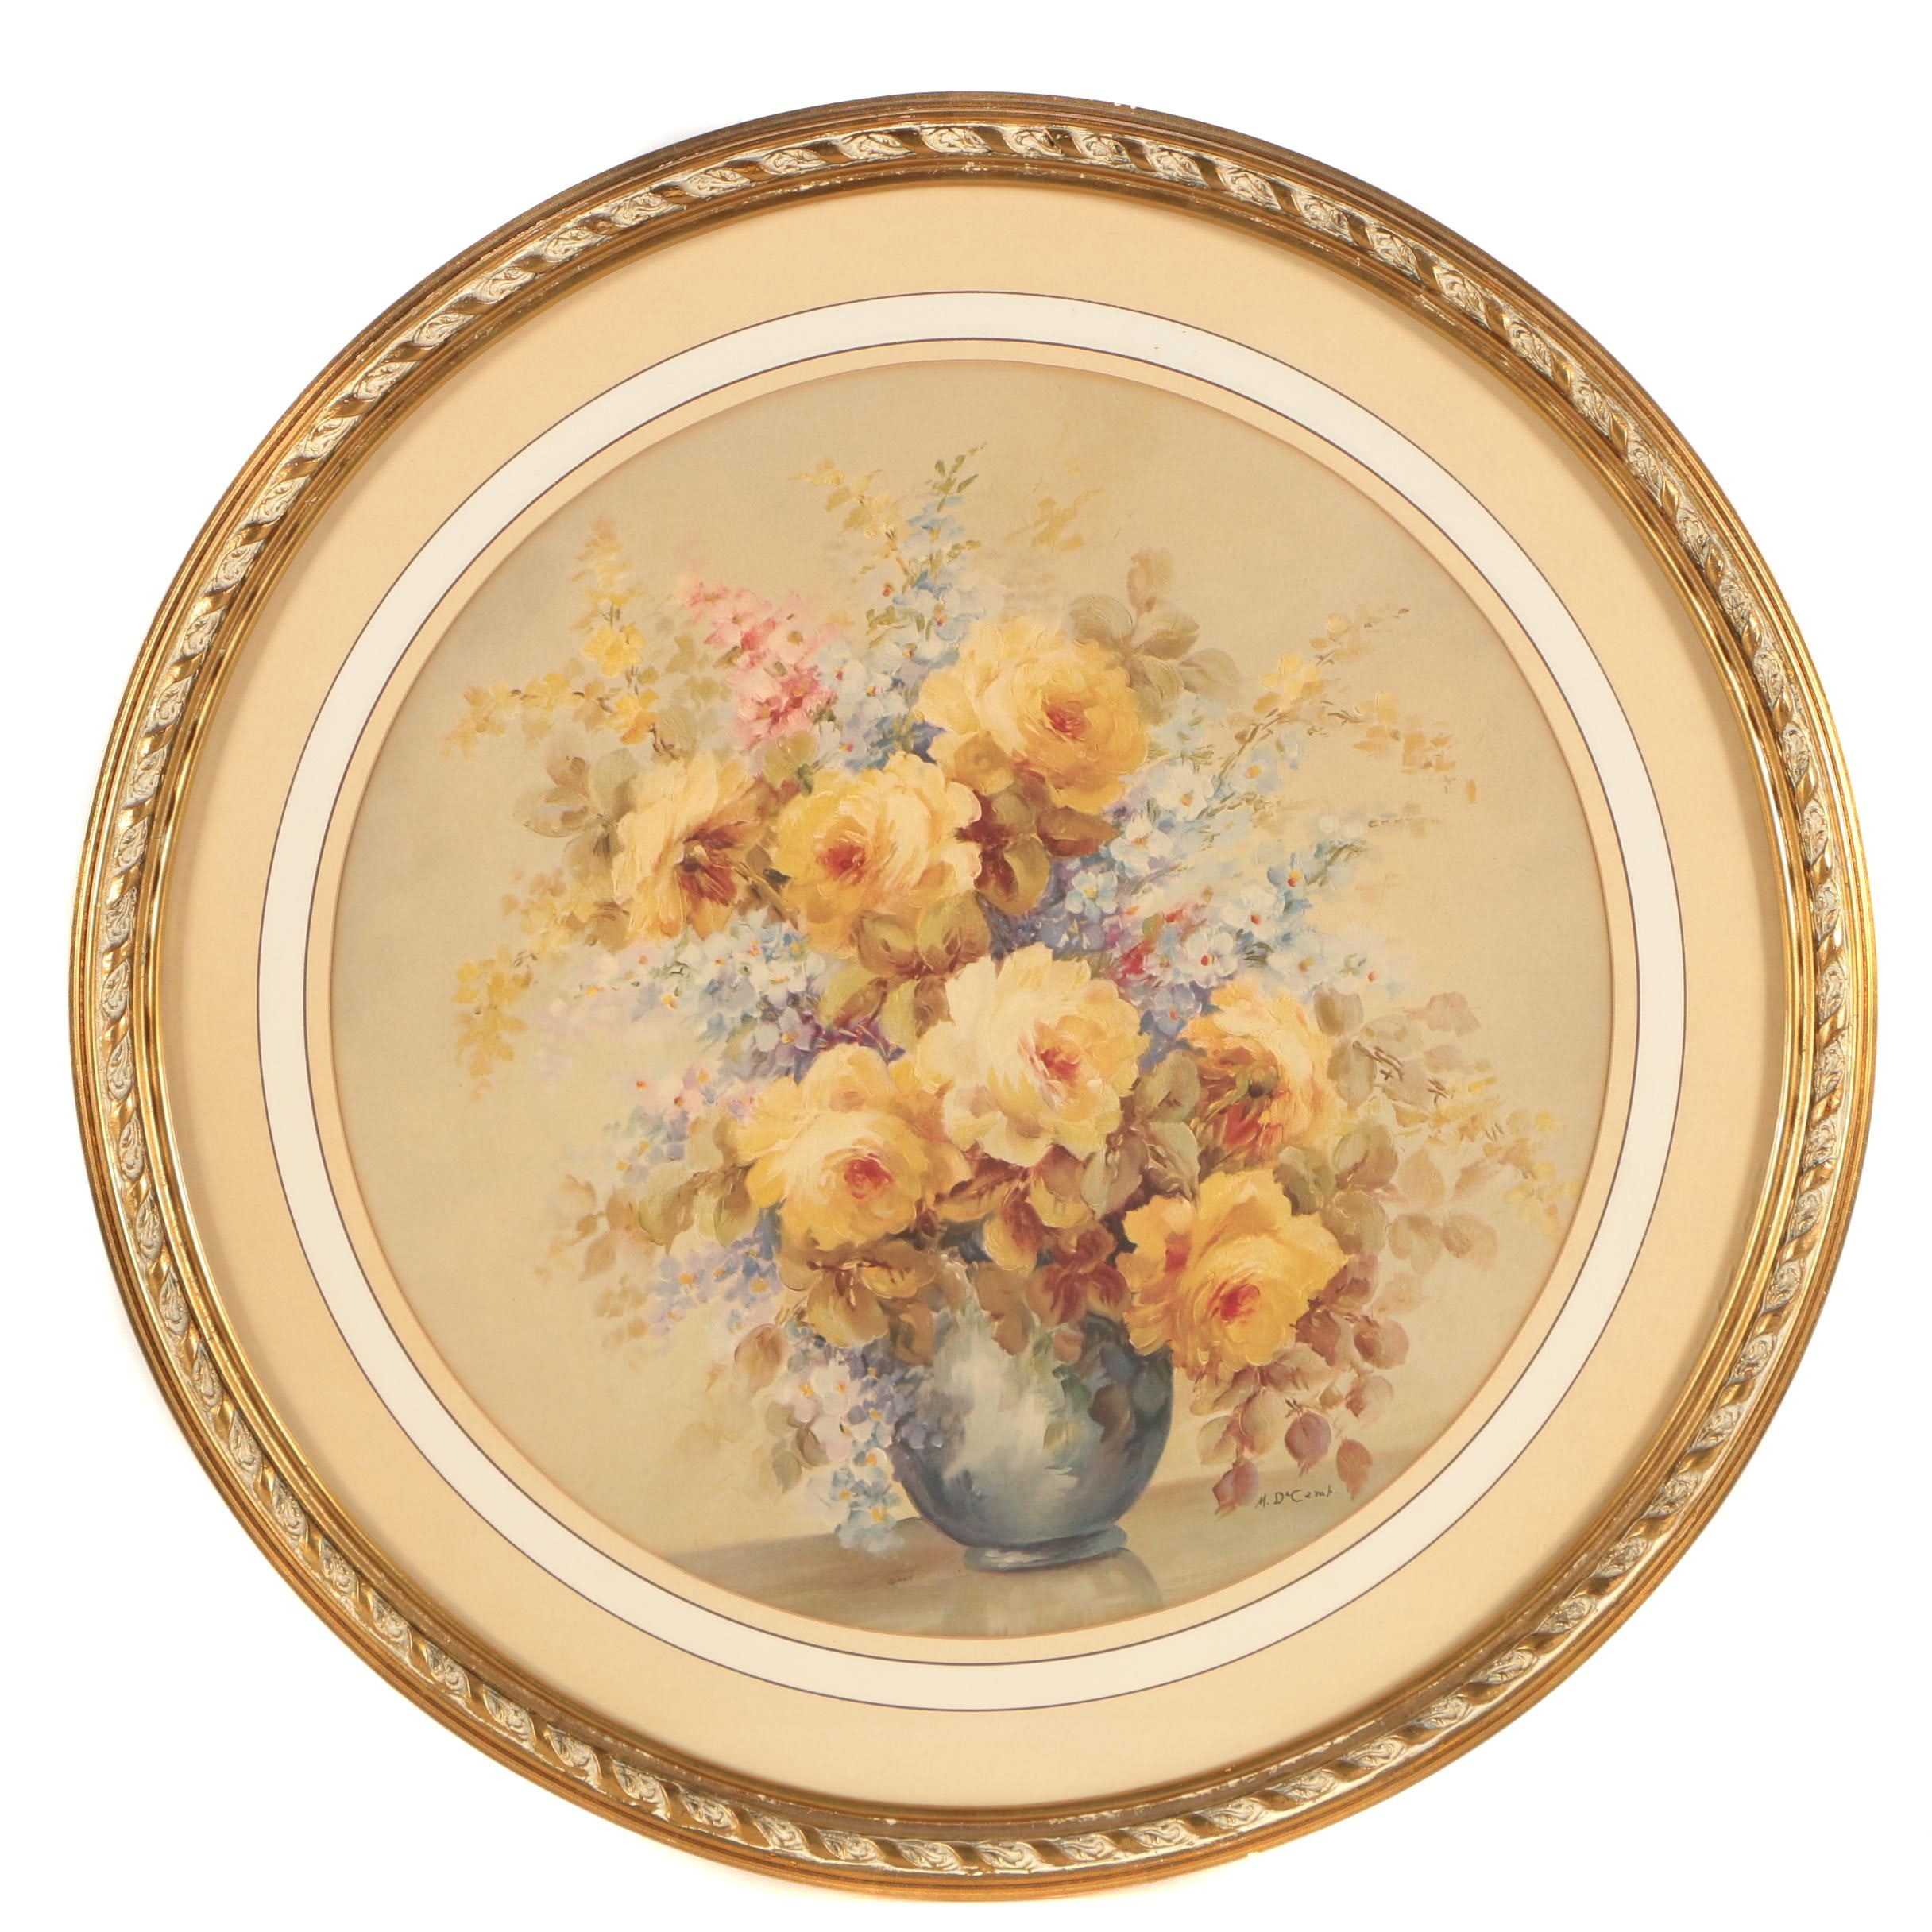 Offset Lithographic Floral Print After M. DeCamp